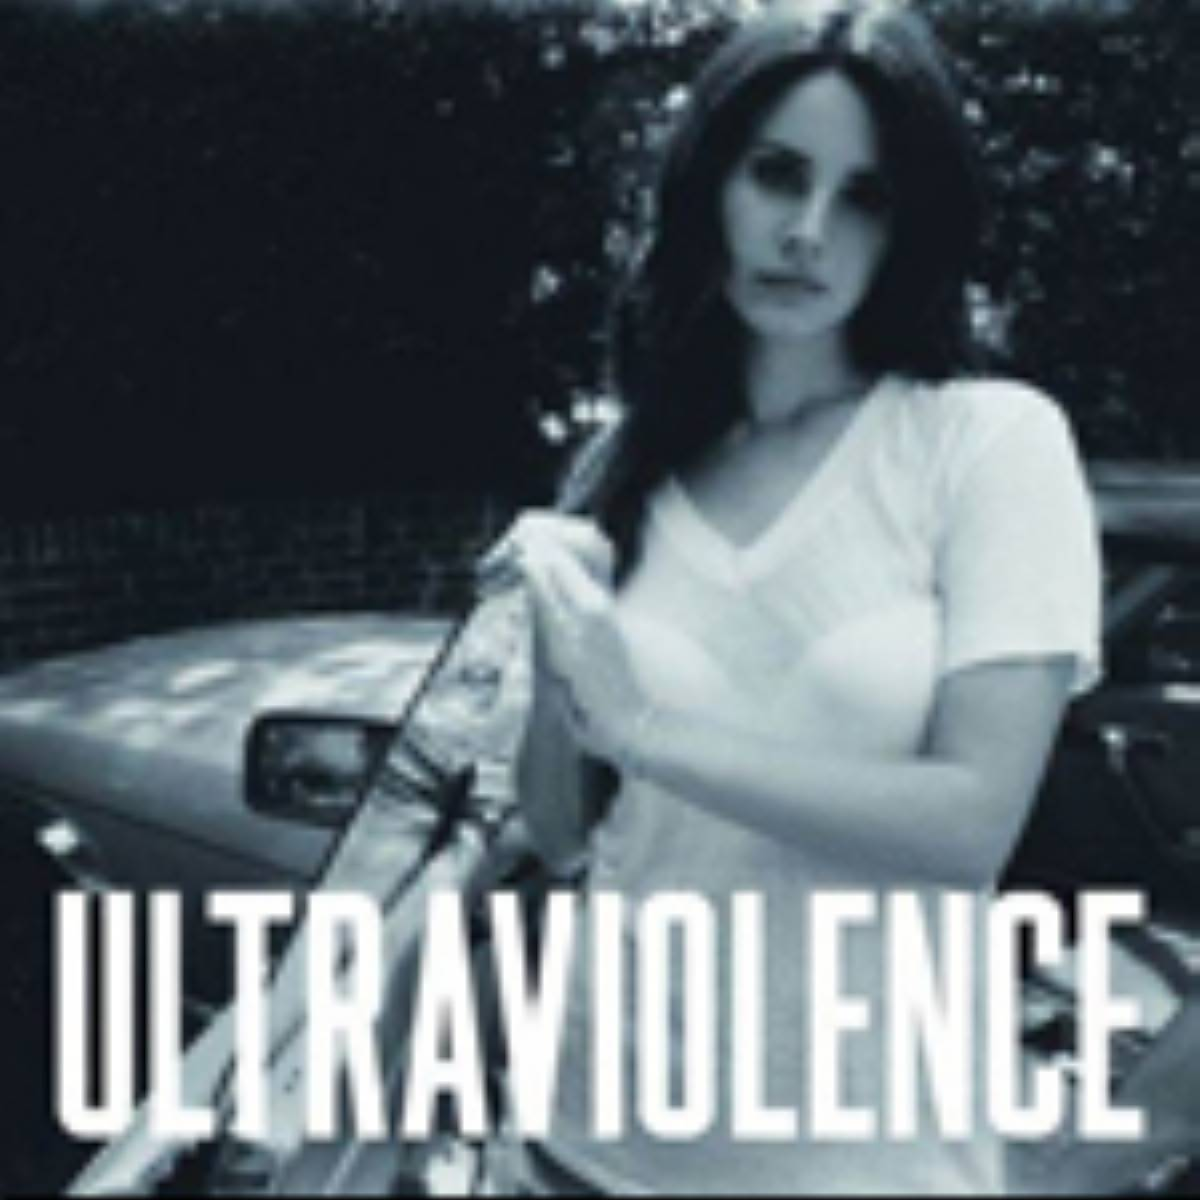 ultraviolence-plyta-cd_min